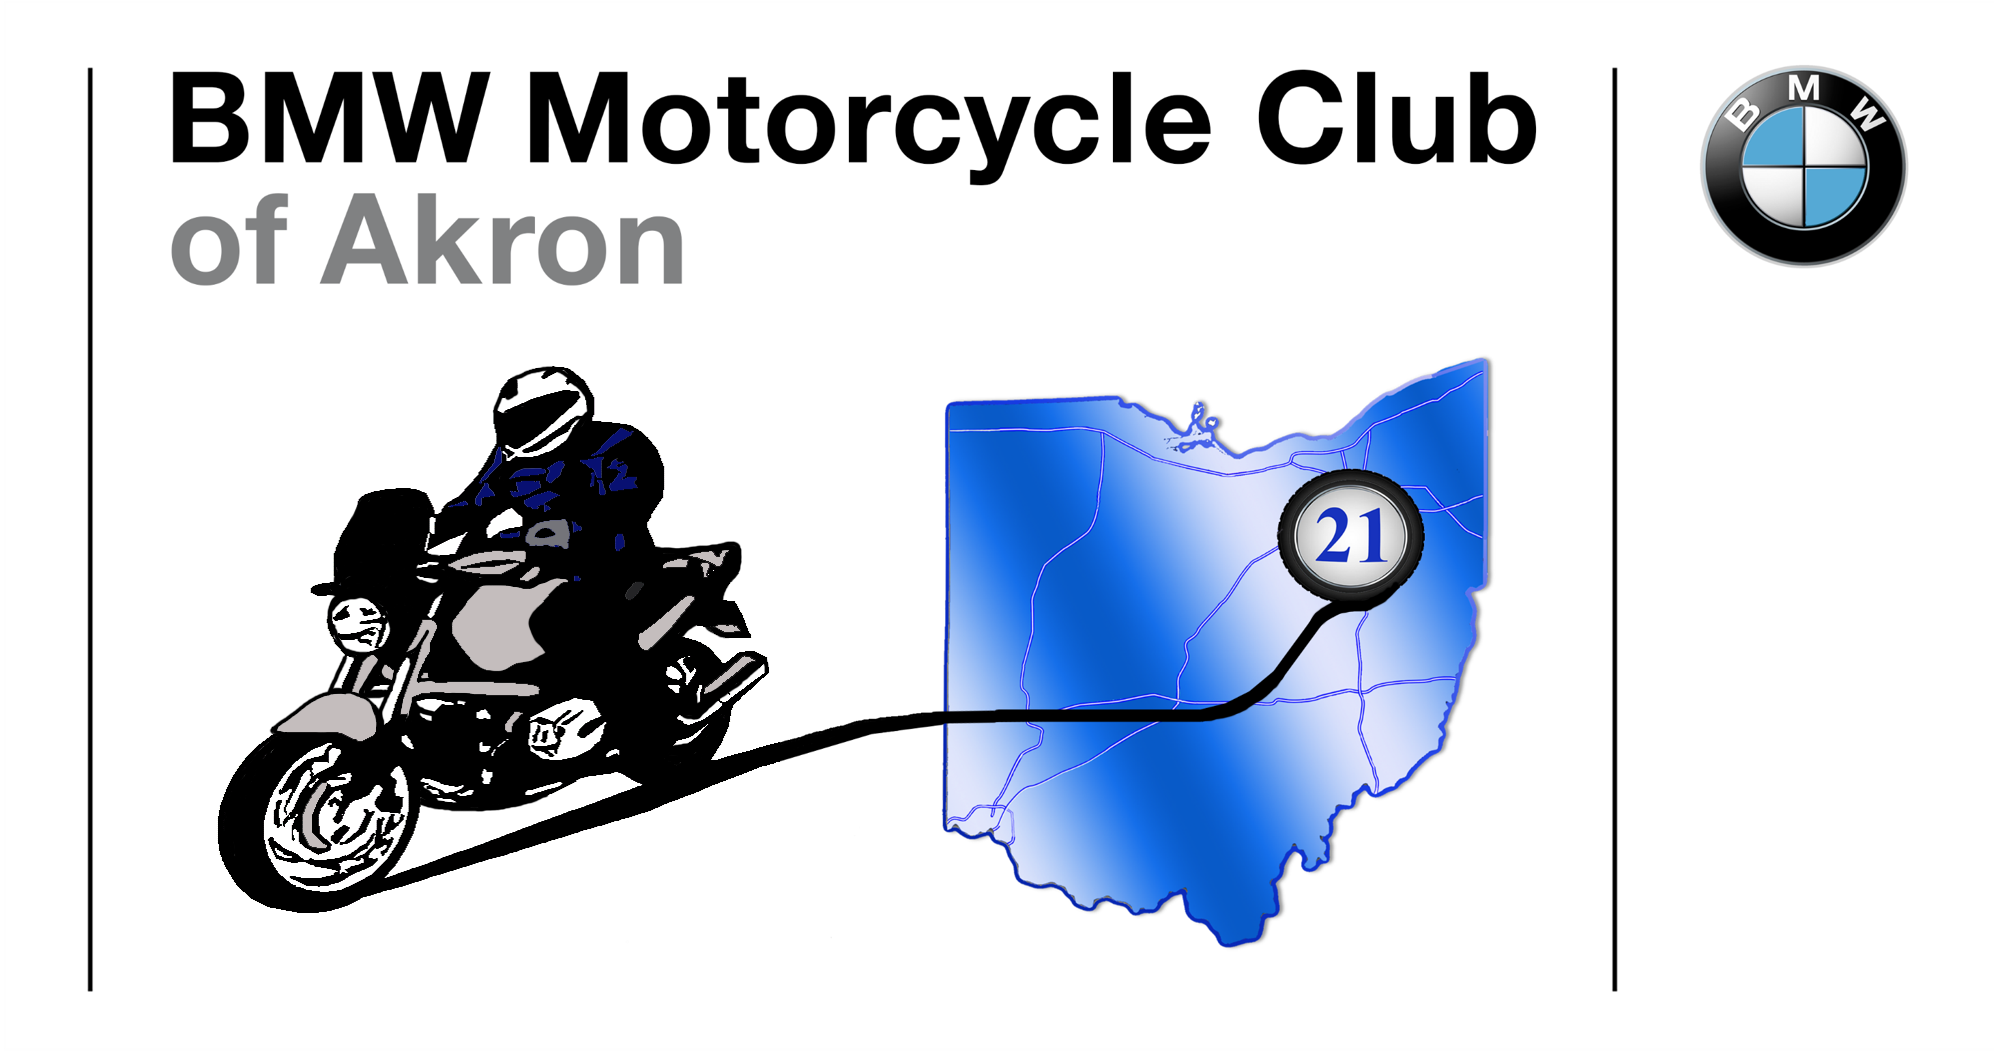 The BMW Motorcycle Club of Akron